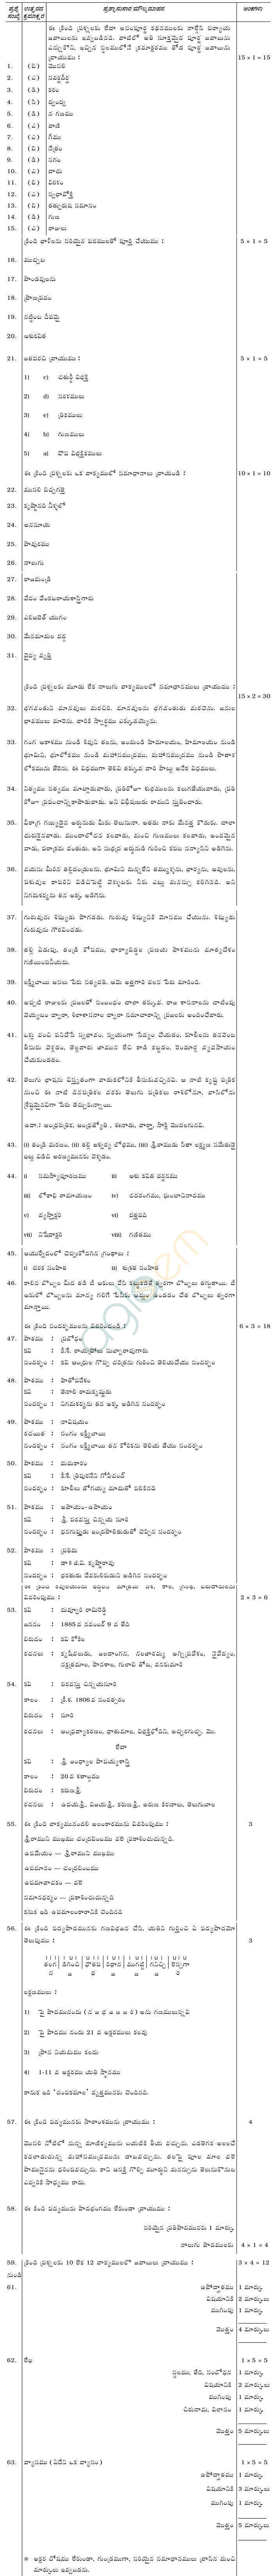 Karnataka SSLC Solved Question Paper April 2014 - Telugu